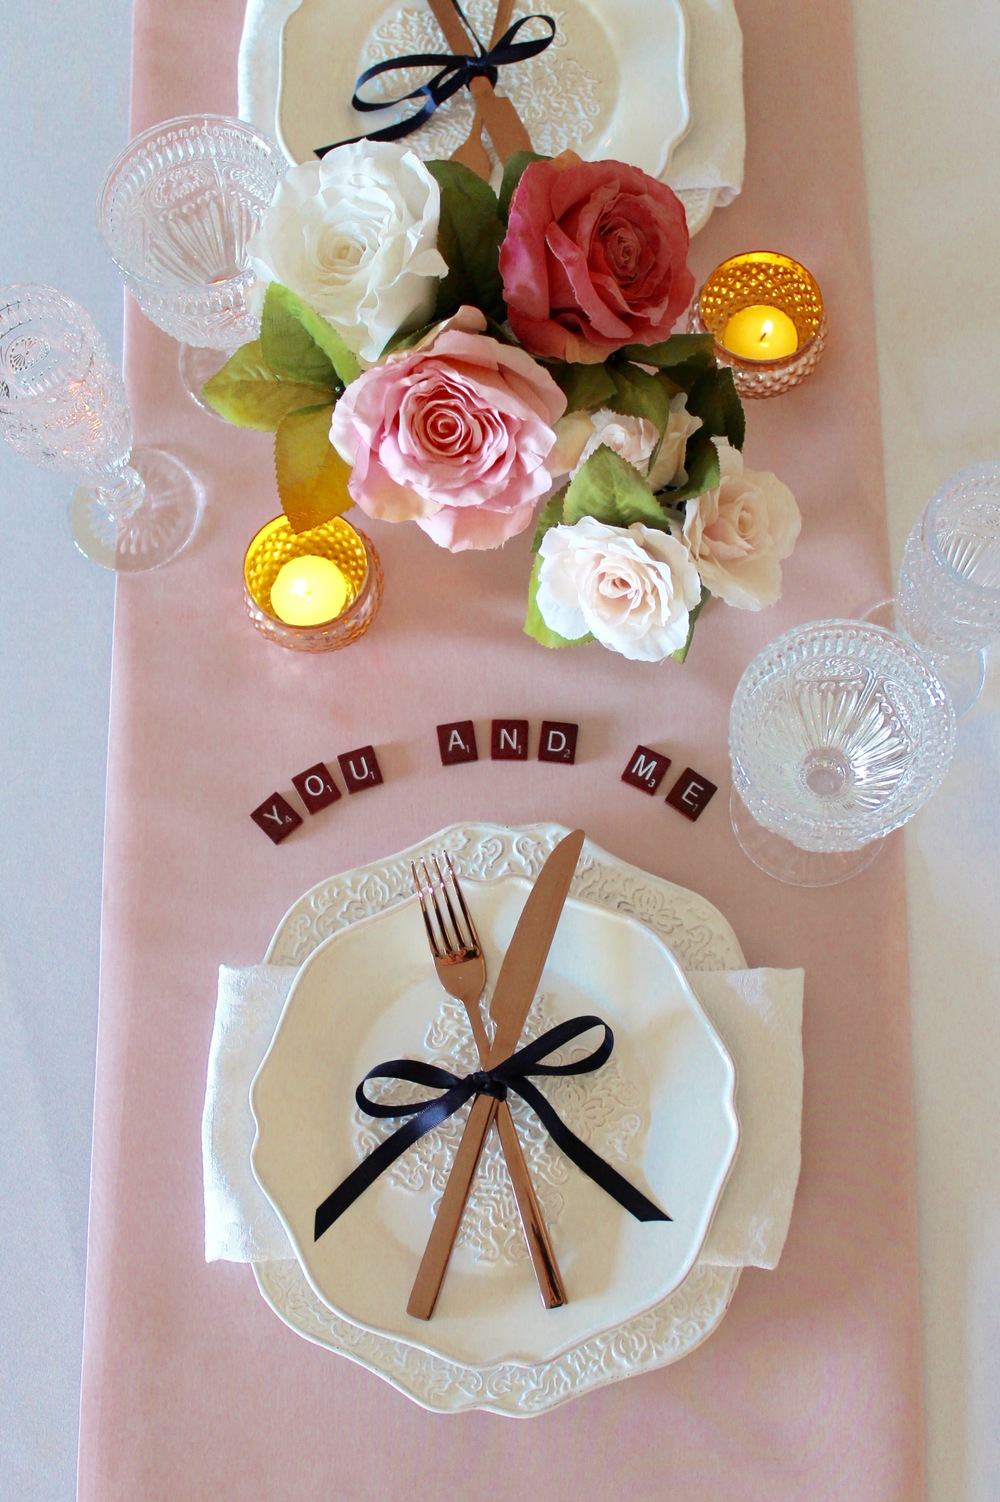 Product Featured: Modern Ornate Dinner Plate and Salad Plate, Rose Gold Cutlery, Clear Vintage Hobnail Goblet and Champagne Flute, Mercury Gold Votive.